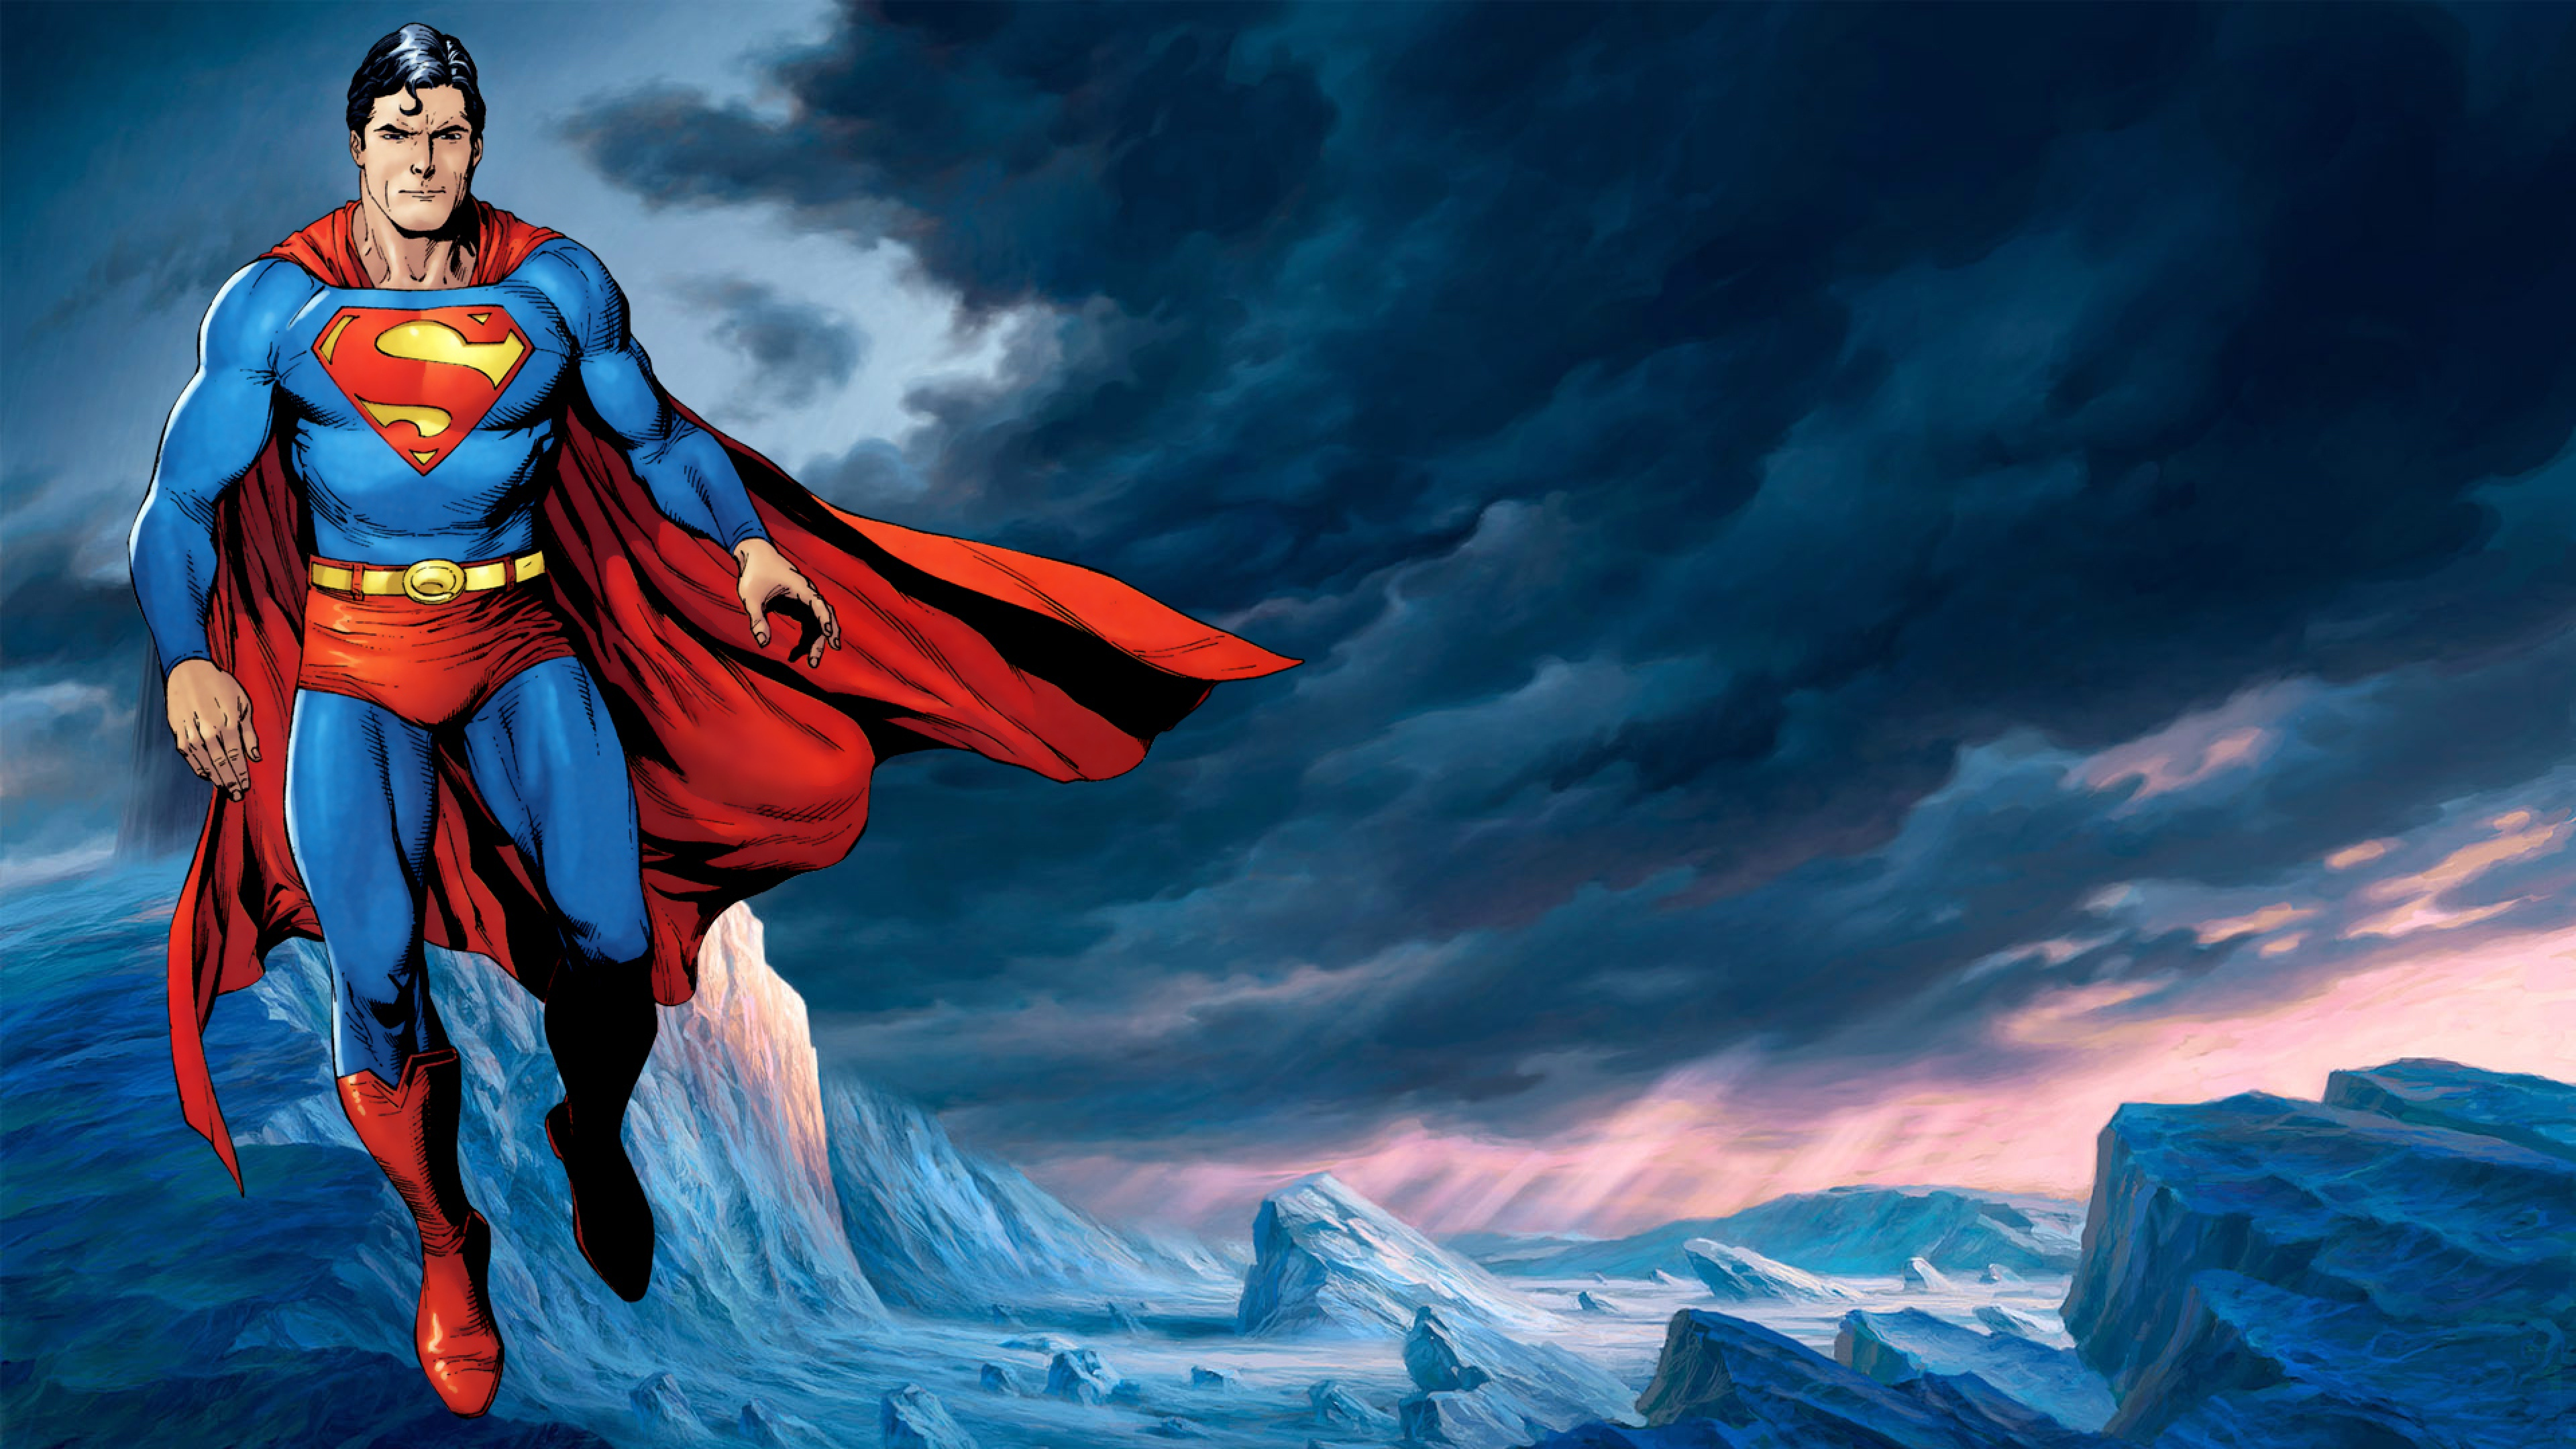 Superman Action comics Dc comics Wallpaper Background 4K Ultra HD 3840x2160